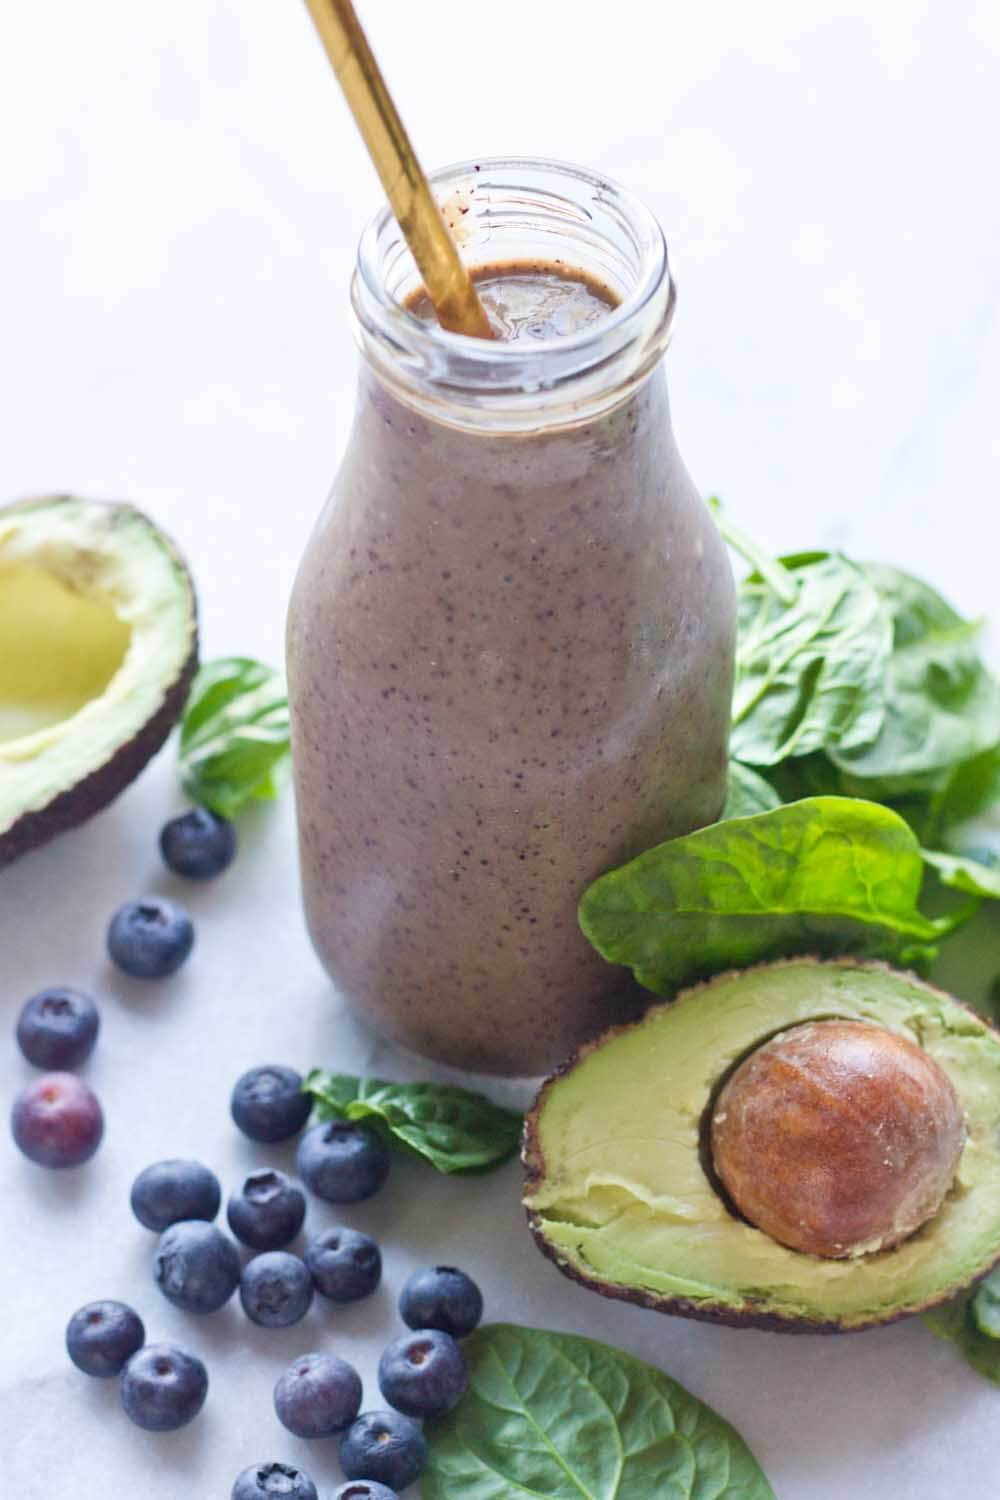 Discussion on this topic: NutriBullet recipes: Superfood smoothies to give you , nutribullet-recipes-superfood-smoothies-to-give-you/